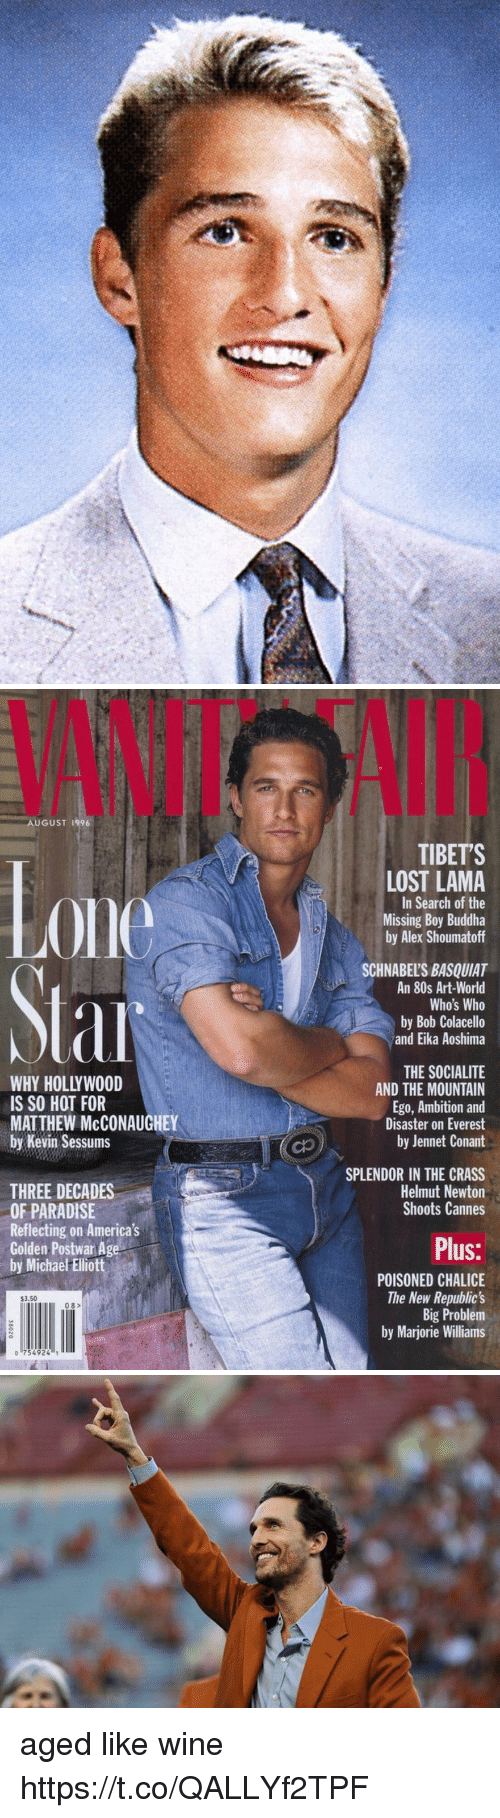 80s, Matthew McConaughey, and Paradise: VANIT  AI  AUGUST 1996  TIBETS  0ne  LOST LAMA  In Search of the  Missing Boy Buddha  by Alex Shoumatoff  SCHNABEL'S BASQUIAT  An 80s Art-World  Who's Who  by Bob Colacello  and Eika Aoshima  WHY HOLLYWOOD  IS SO HOT FOR  MATTHEW McCONAUGHEY  by Kevin Sessums  THE SOCIALITE  AND THE MOUNTAIN  Ego, Ambition and  Disaster on Everest  by Jennet Conant  SPLENDOR IN THE CRASS  Helmut Newton  Shoots Cannes  THREE DECADES  OF PARADISE  Reflecting on America's  Golden Postwar Age  by Michae Ellott  Plus:  POISONED CHALICE  The New Republic's  Big Problem  by Marjorie Williams  $3.50  08>  o 754924 aged like wine https://t.co/QALLYf2TPF